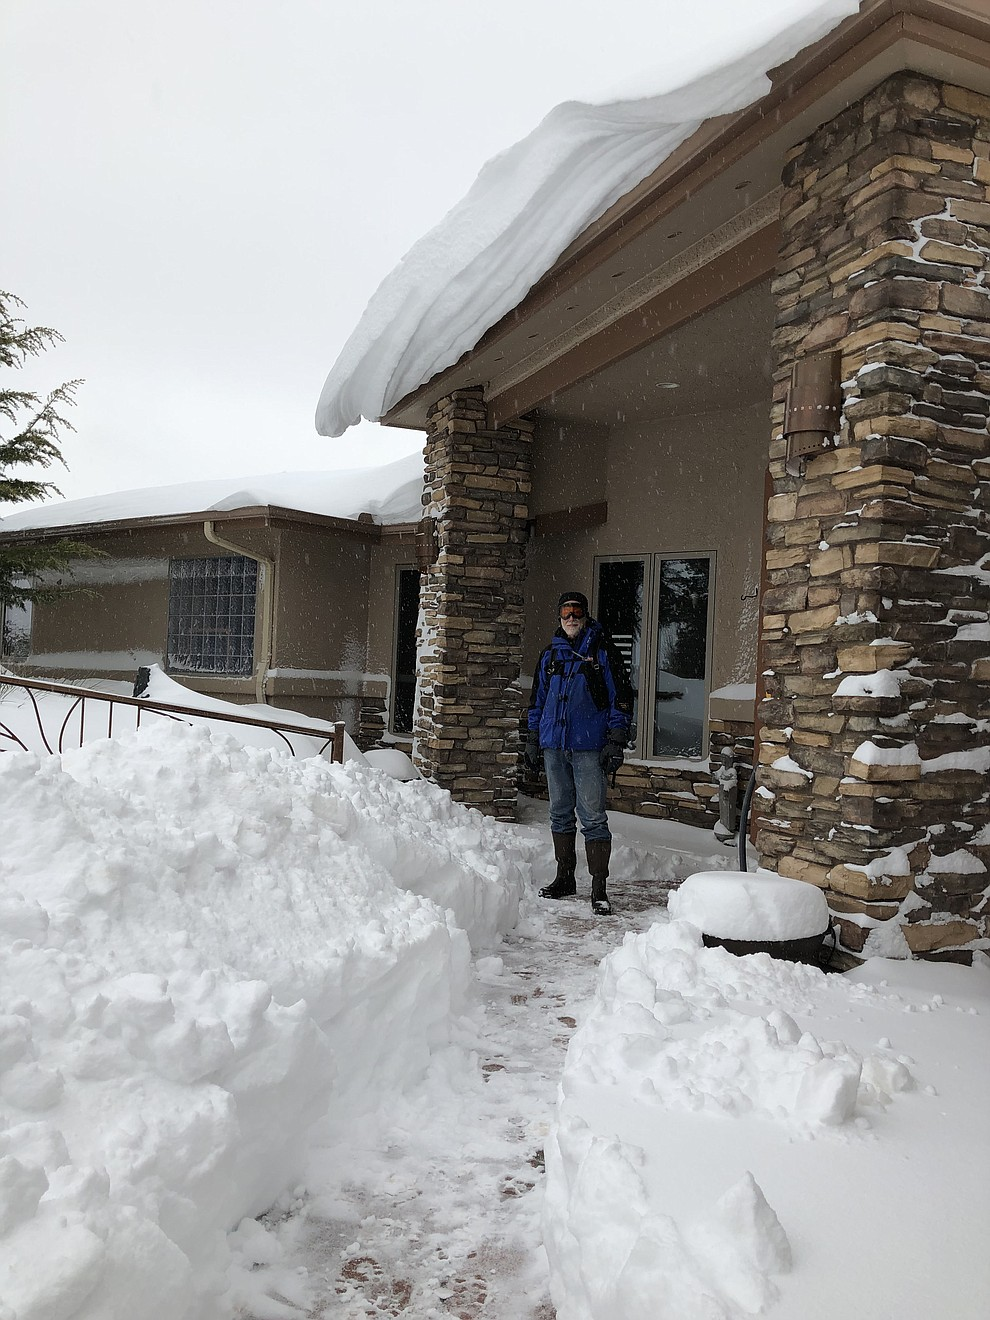 "We are at our house at about 5800' in Prescott. Took 2/22/19. We must have 30""+ here."